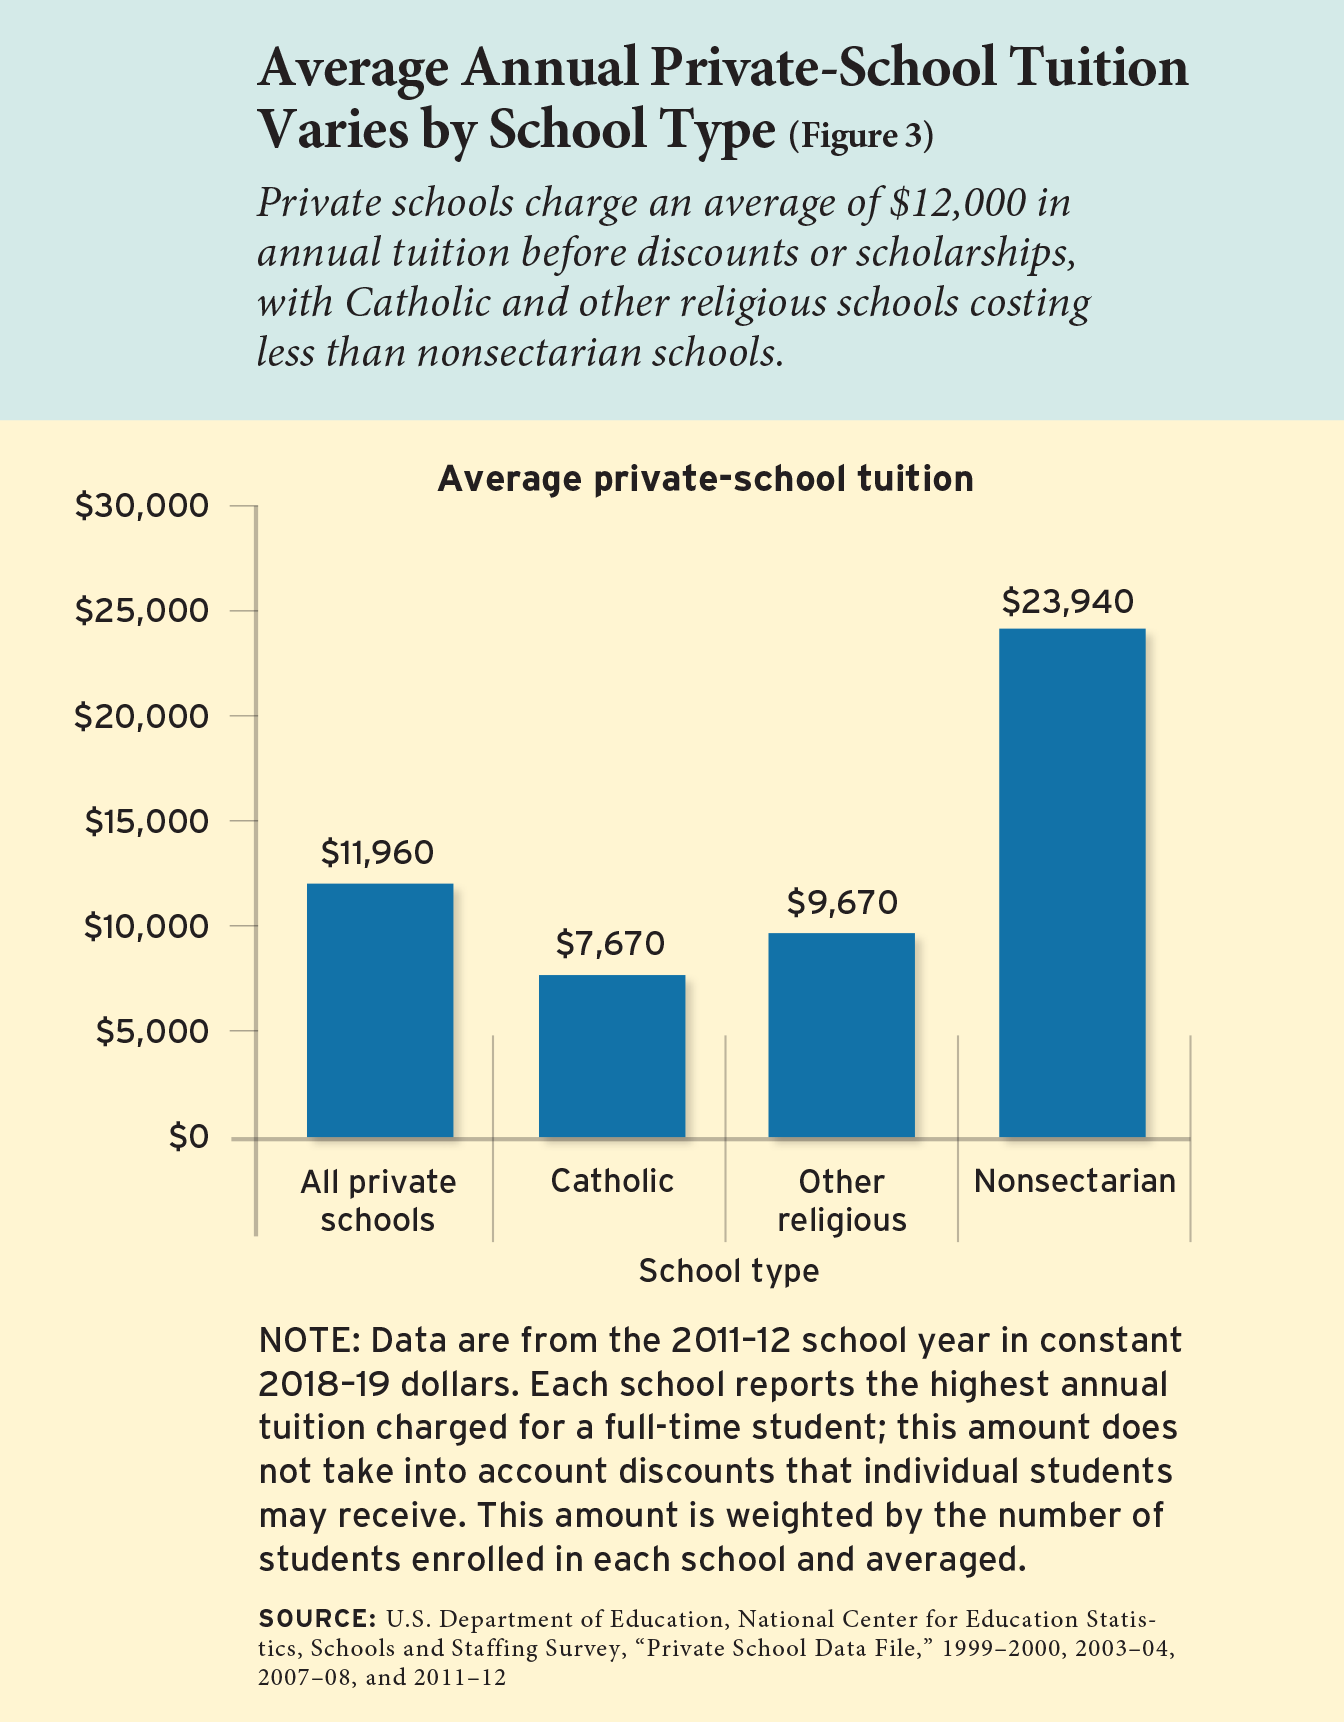 Figure 3: Average Annual Private-School Tuition Varies by School Type